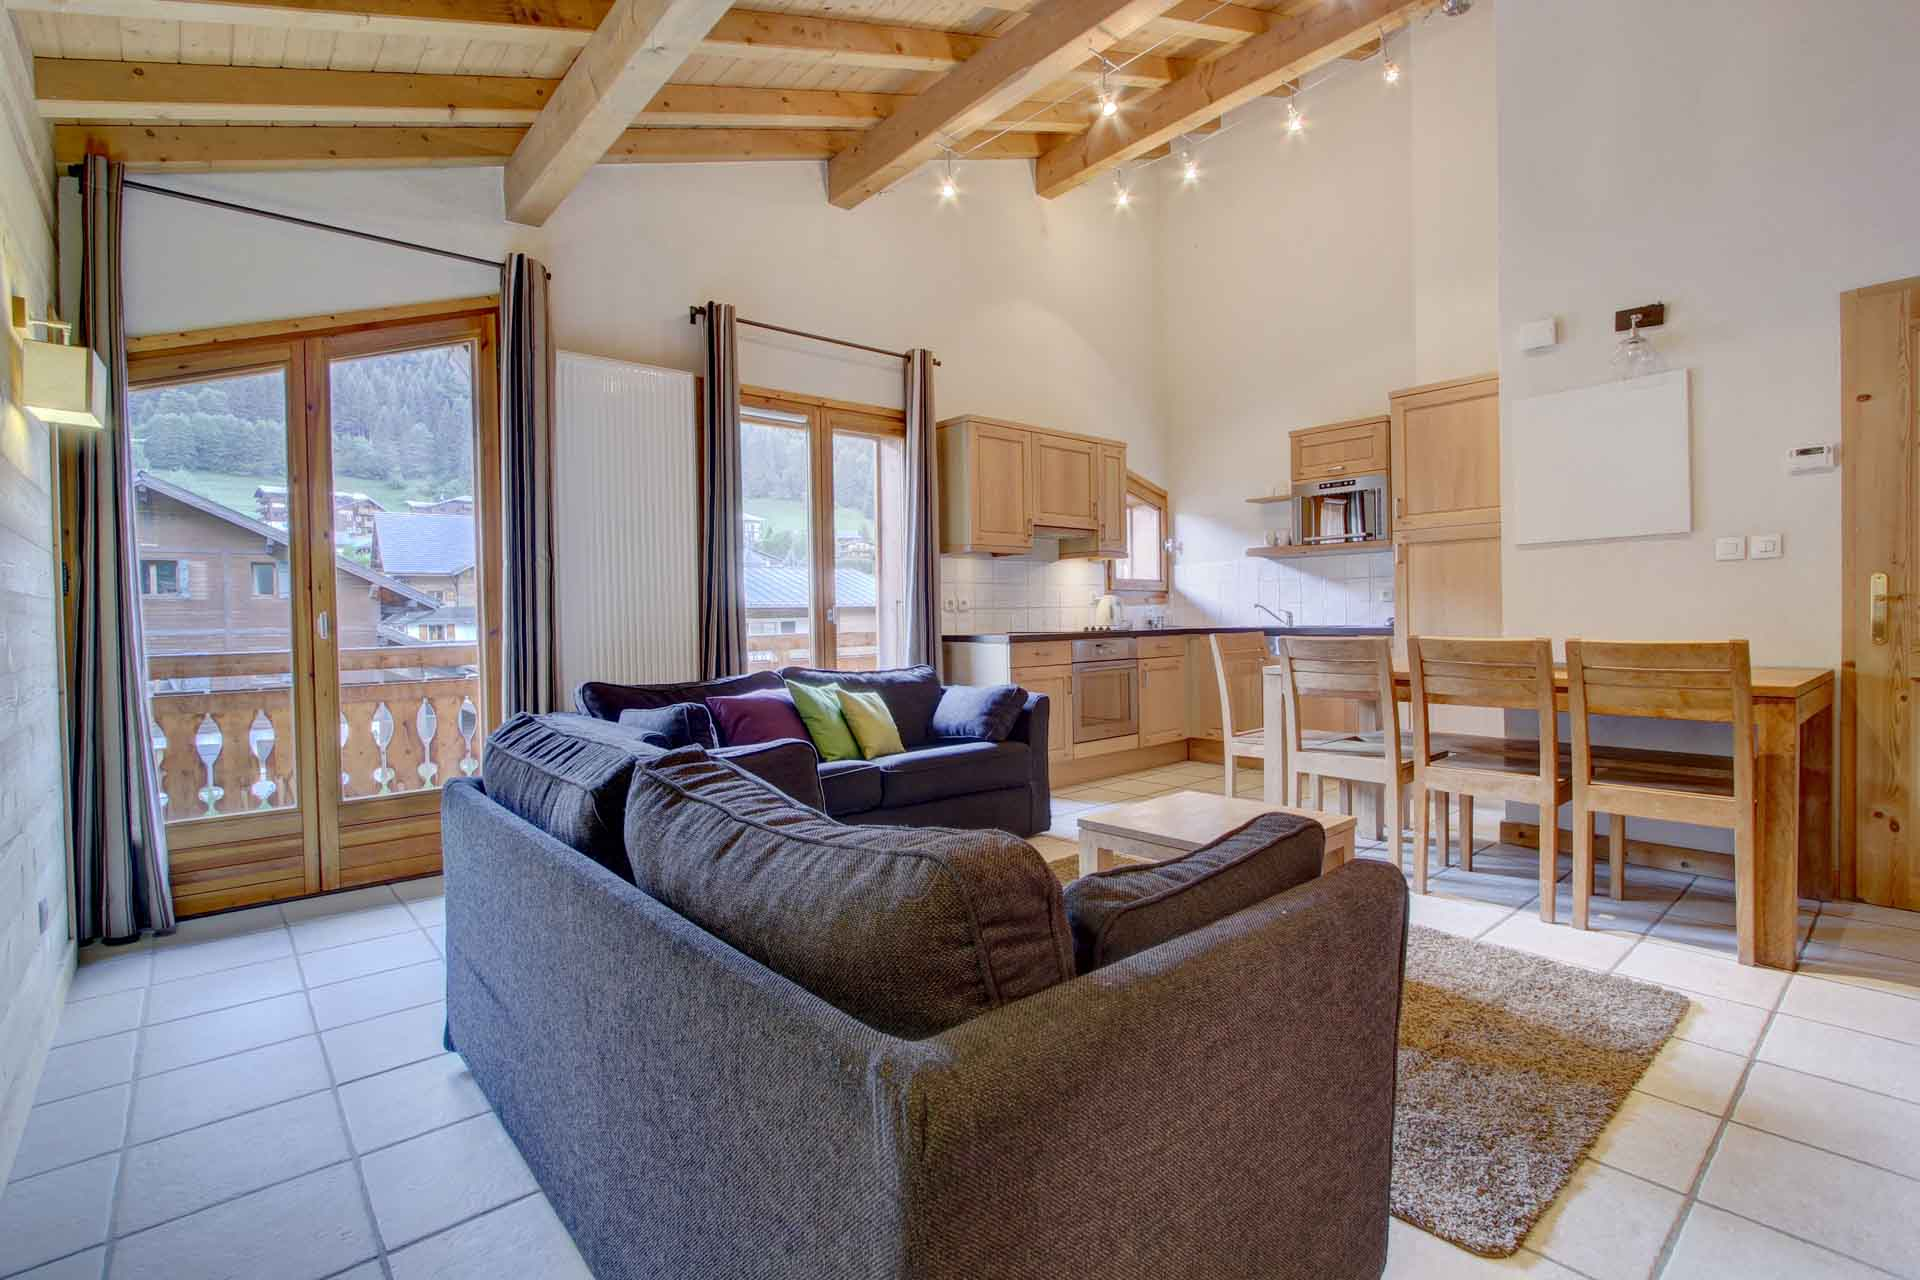 Apartment for sale in Morzine